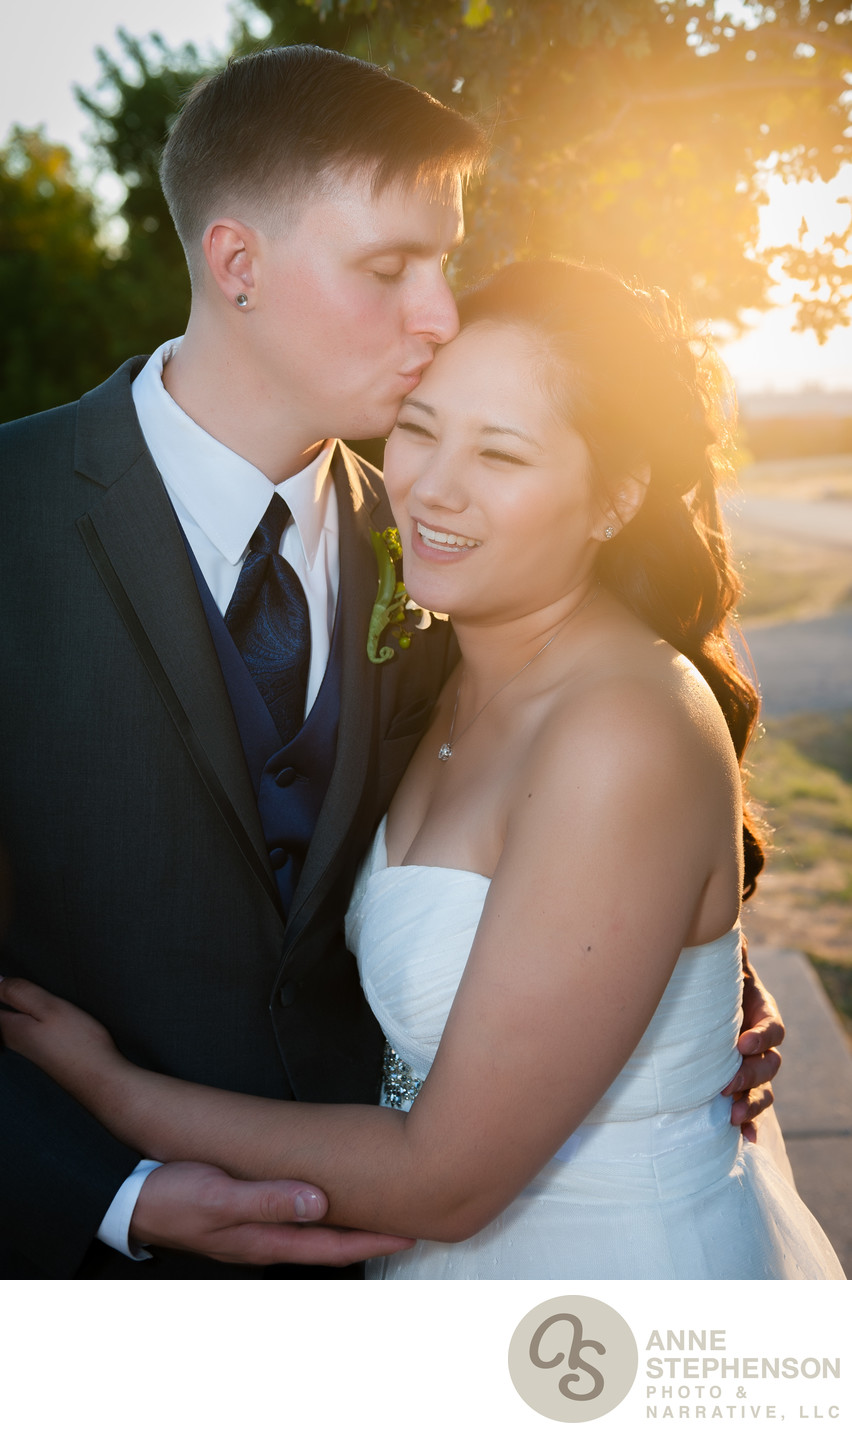 Backlit Wedding Couple Portrait with Sun Flare